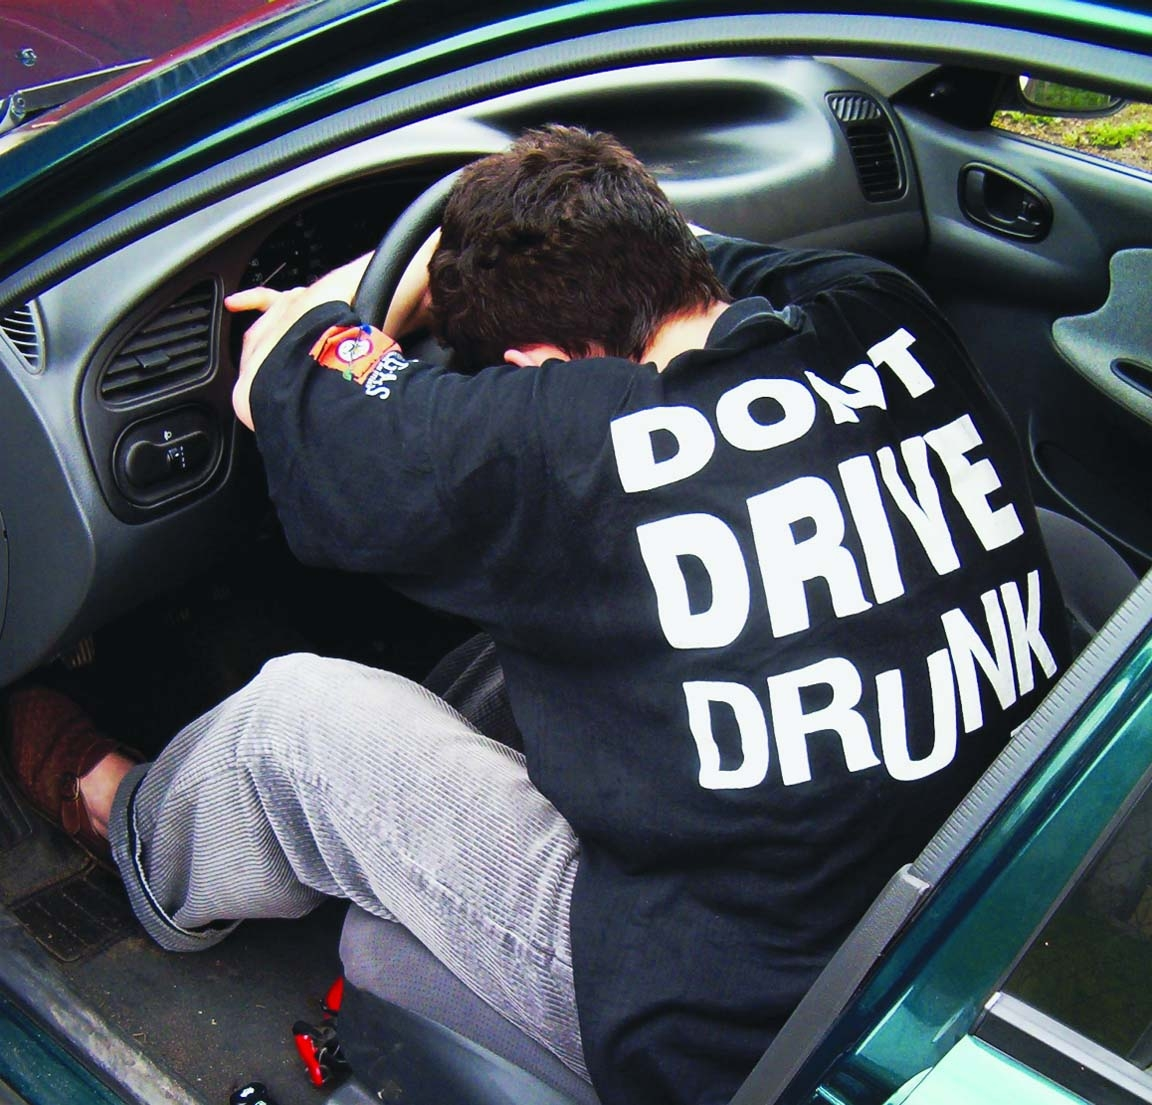 Little alcohol too, dangerous while driving